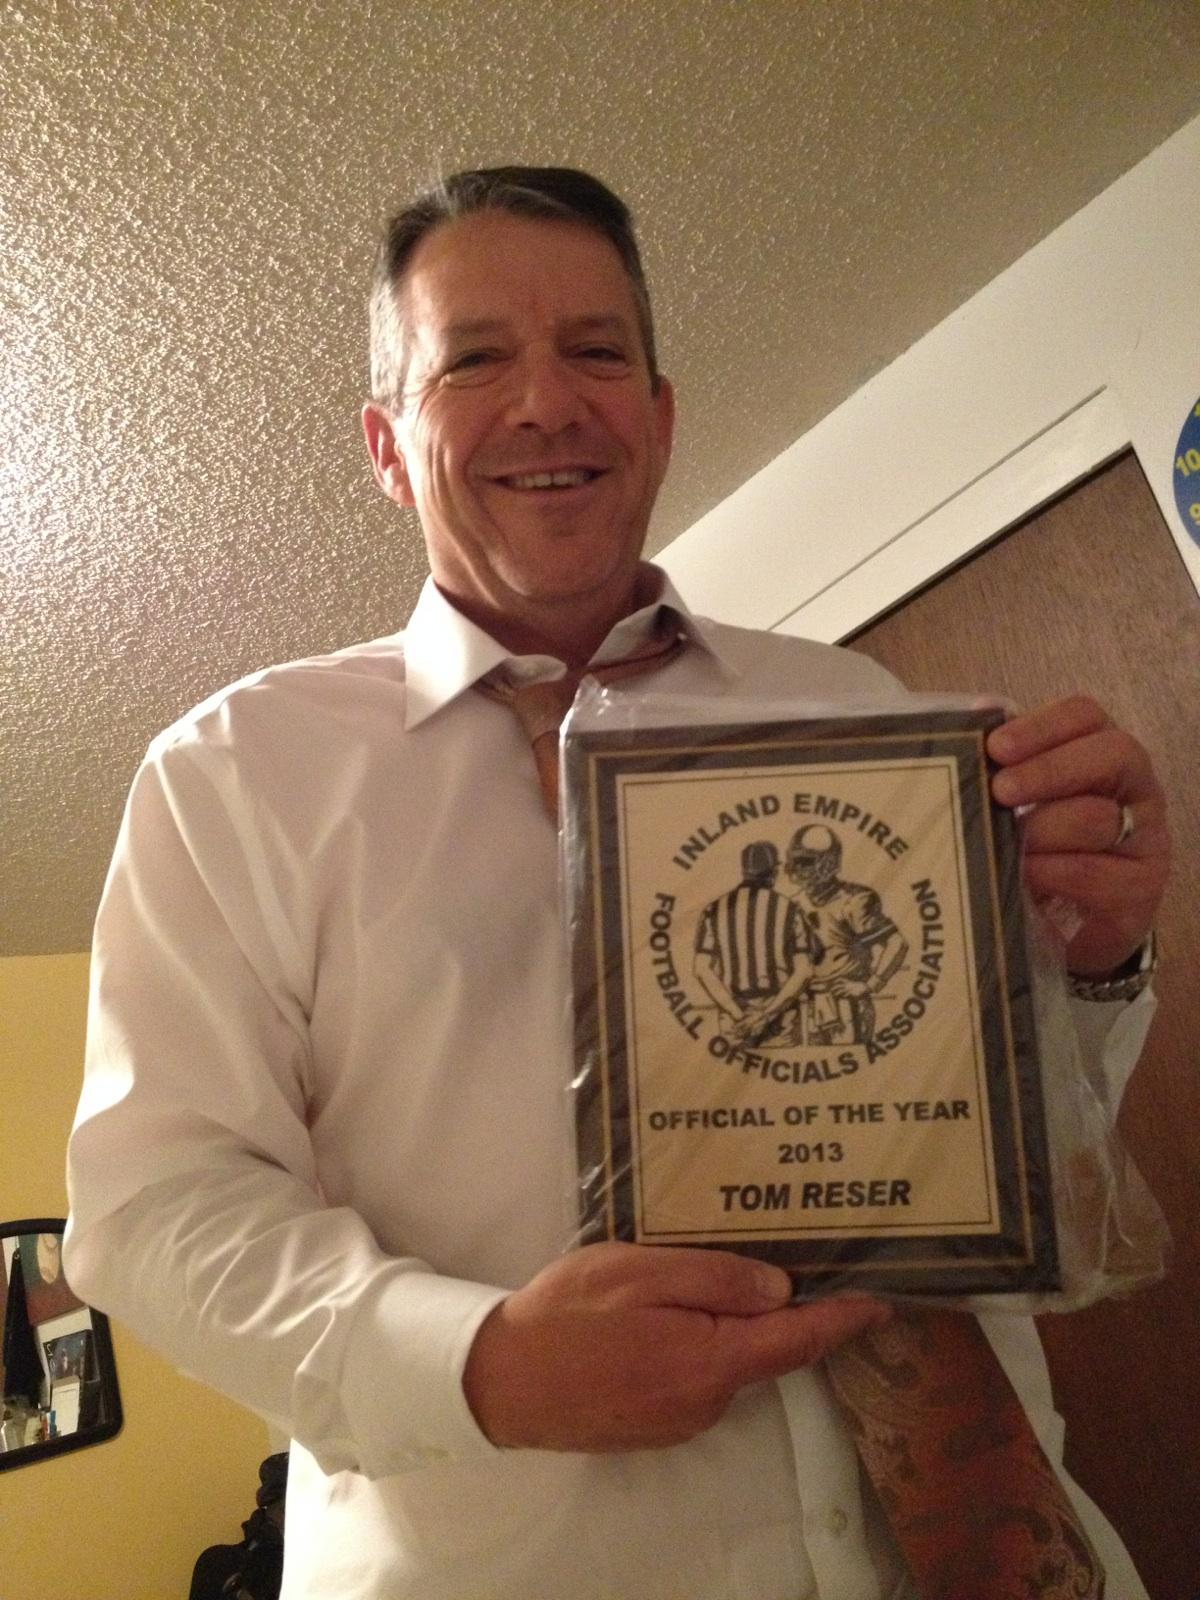 My dad with his very well deserved Official of the Year award.